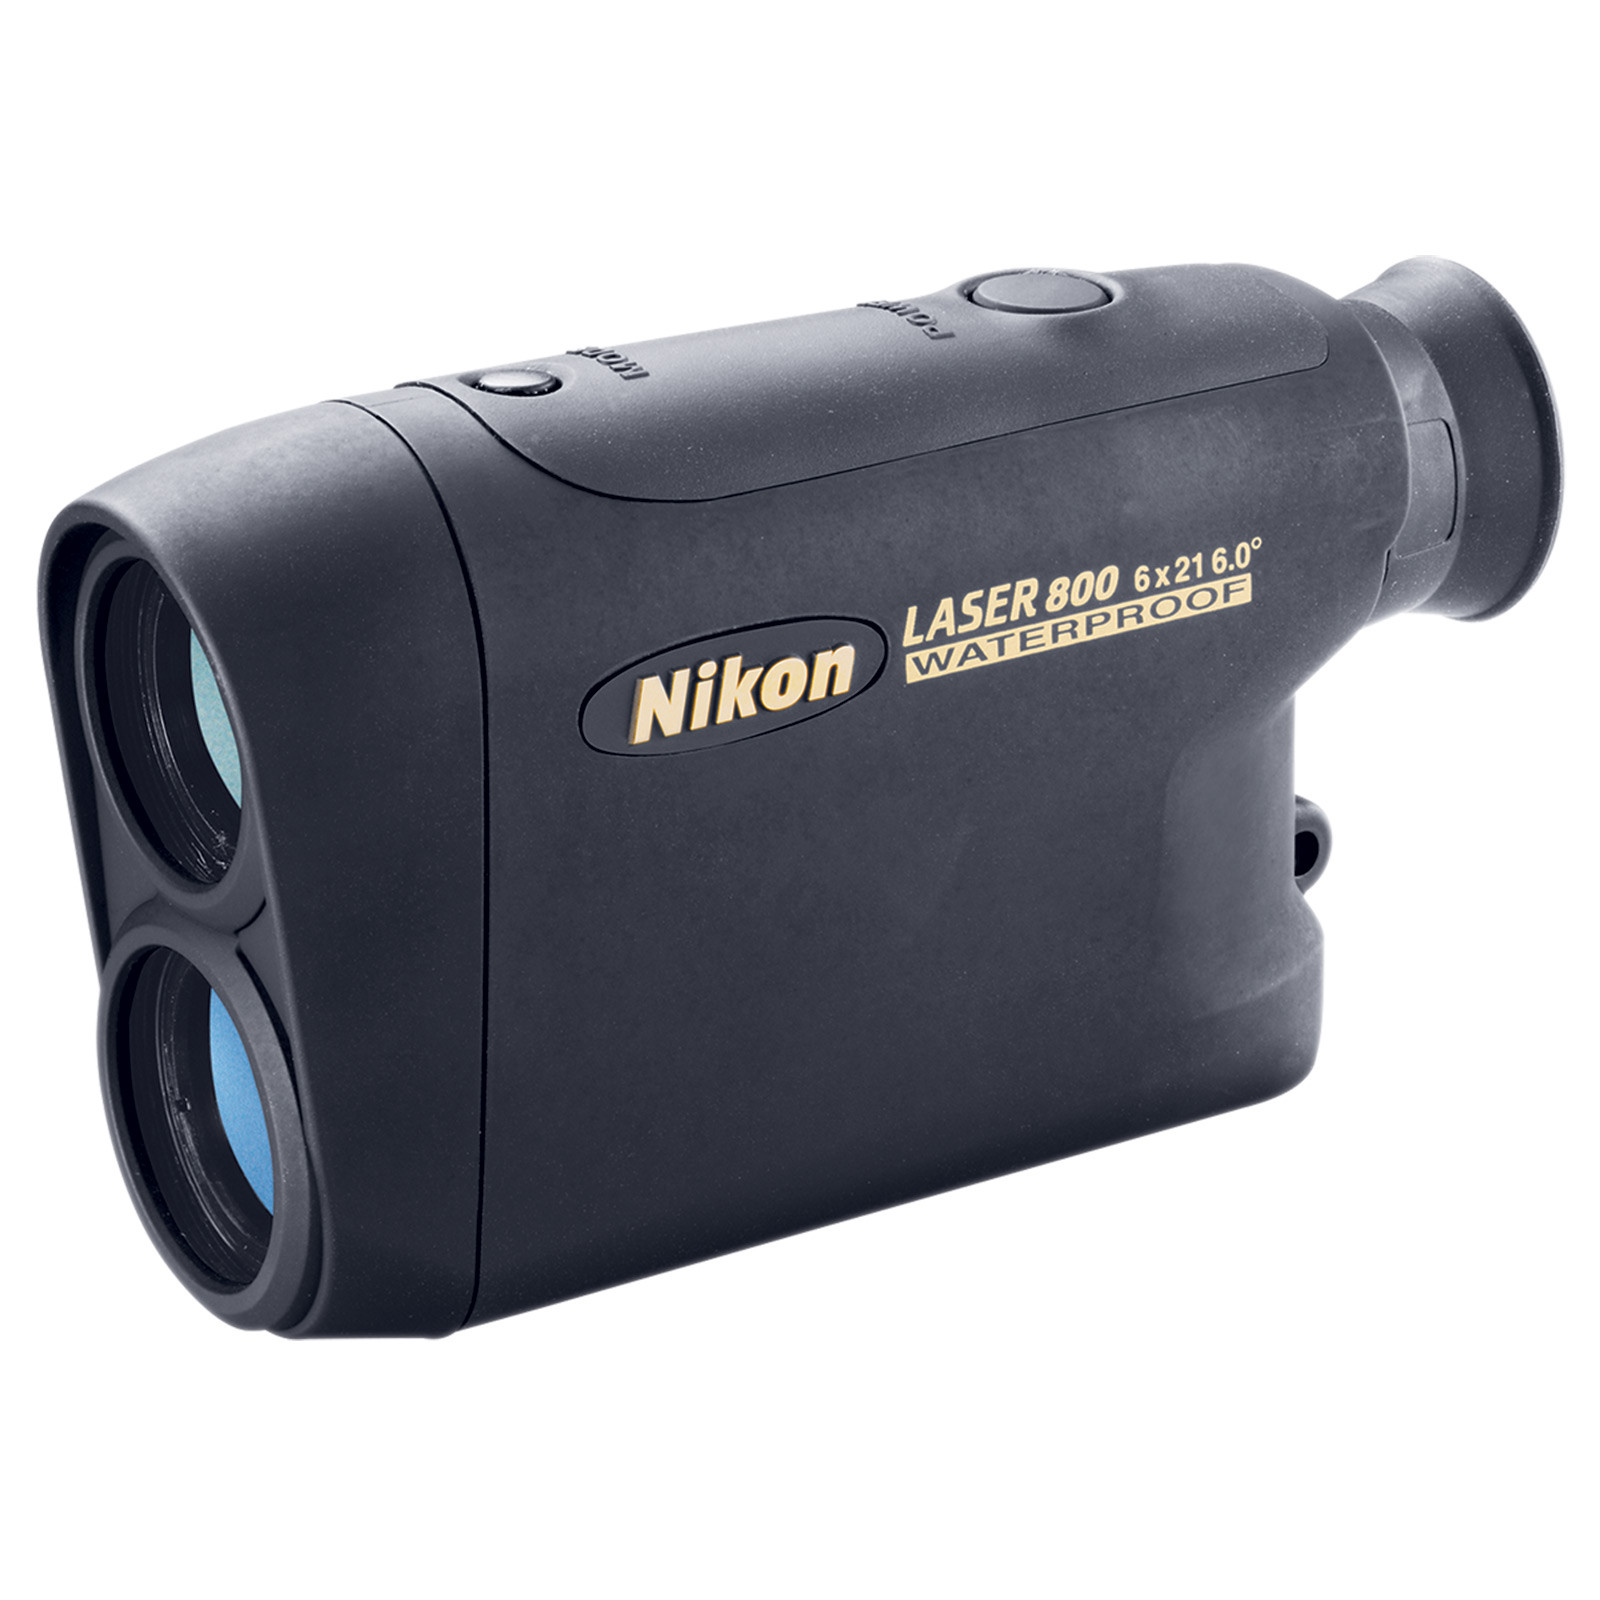 laser rangfinder Lightware's sf02 is a lightweight laser rangefinder module that provides fast and accurate distance measurements from 0-50 meters (0 to 164 feet.